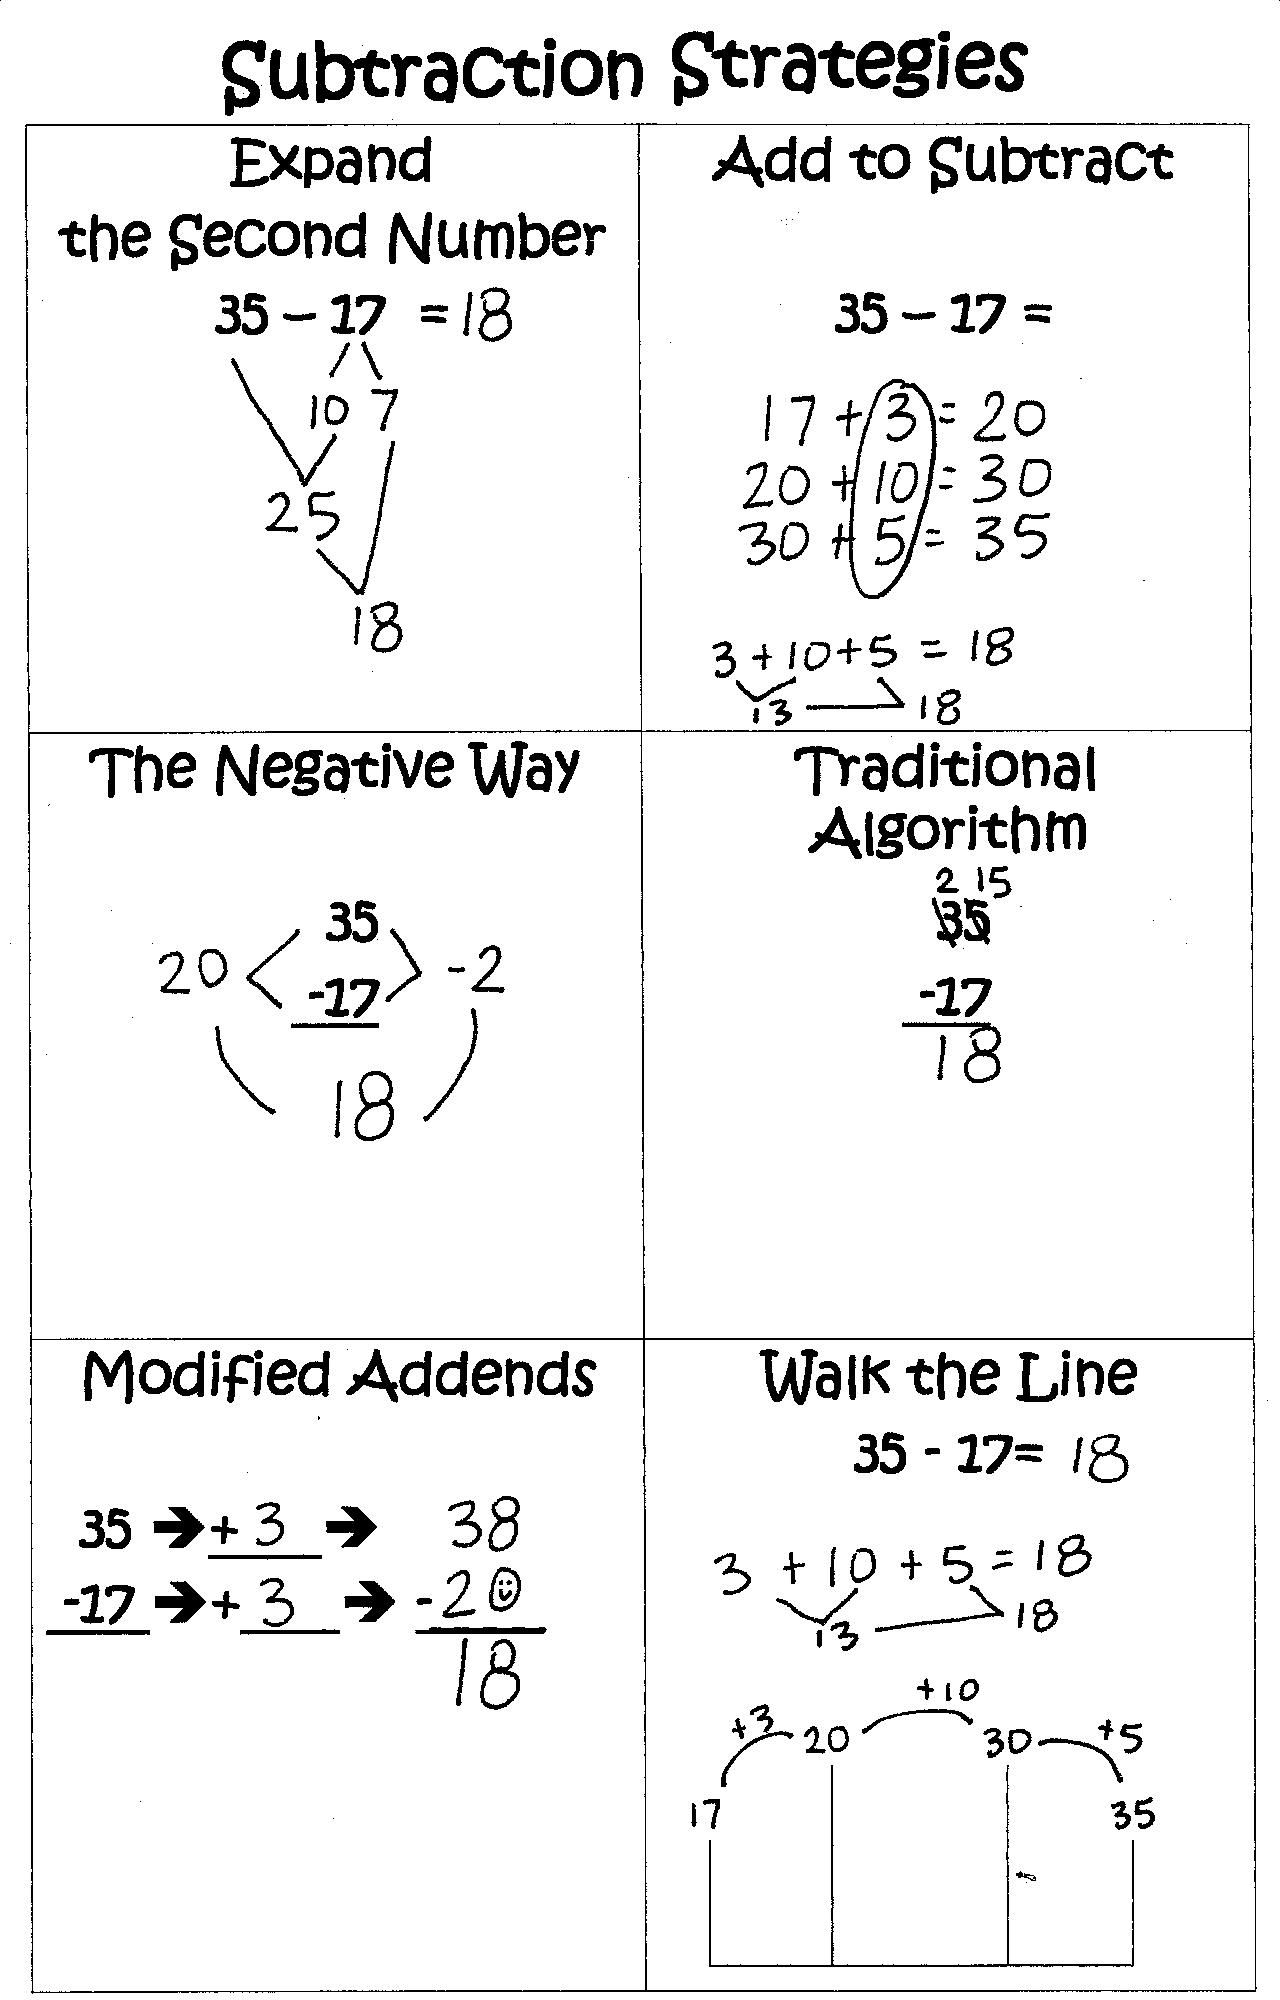 Common Core Math Worksheets For 2nd Grade : Common core subtraction strategies nd grade ideas